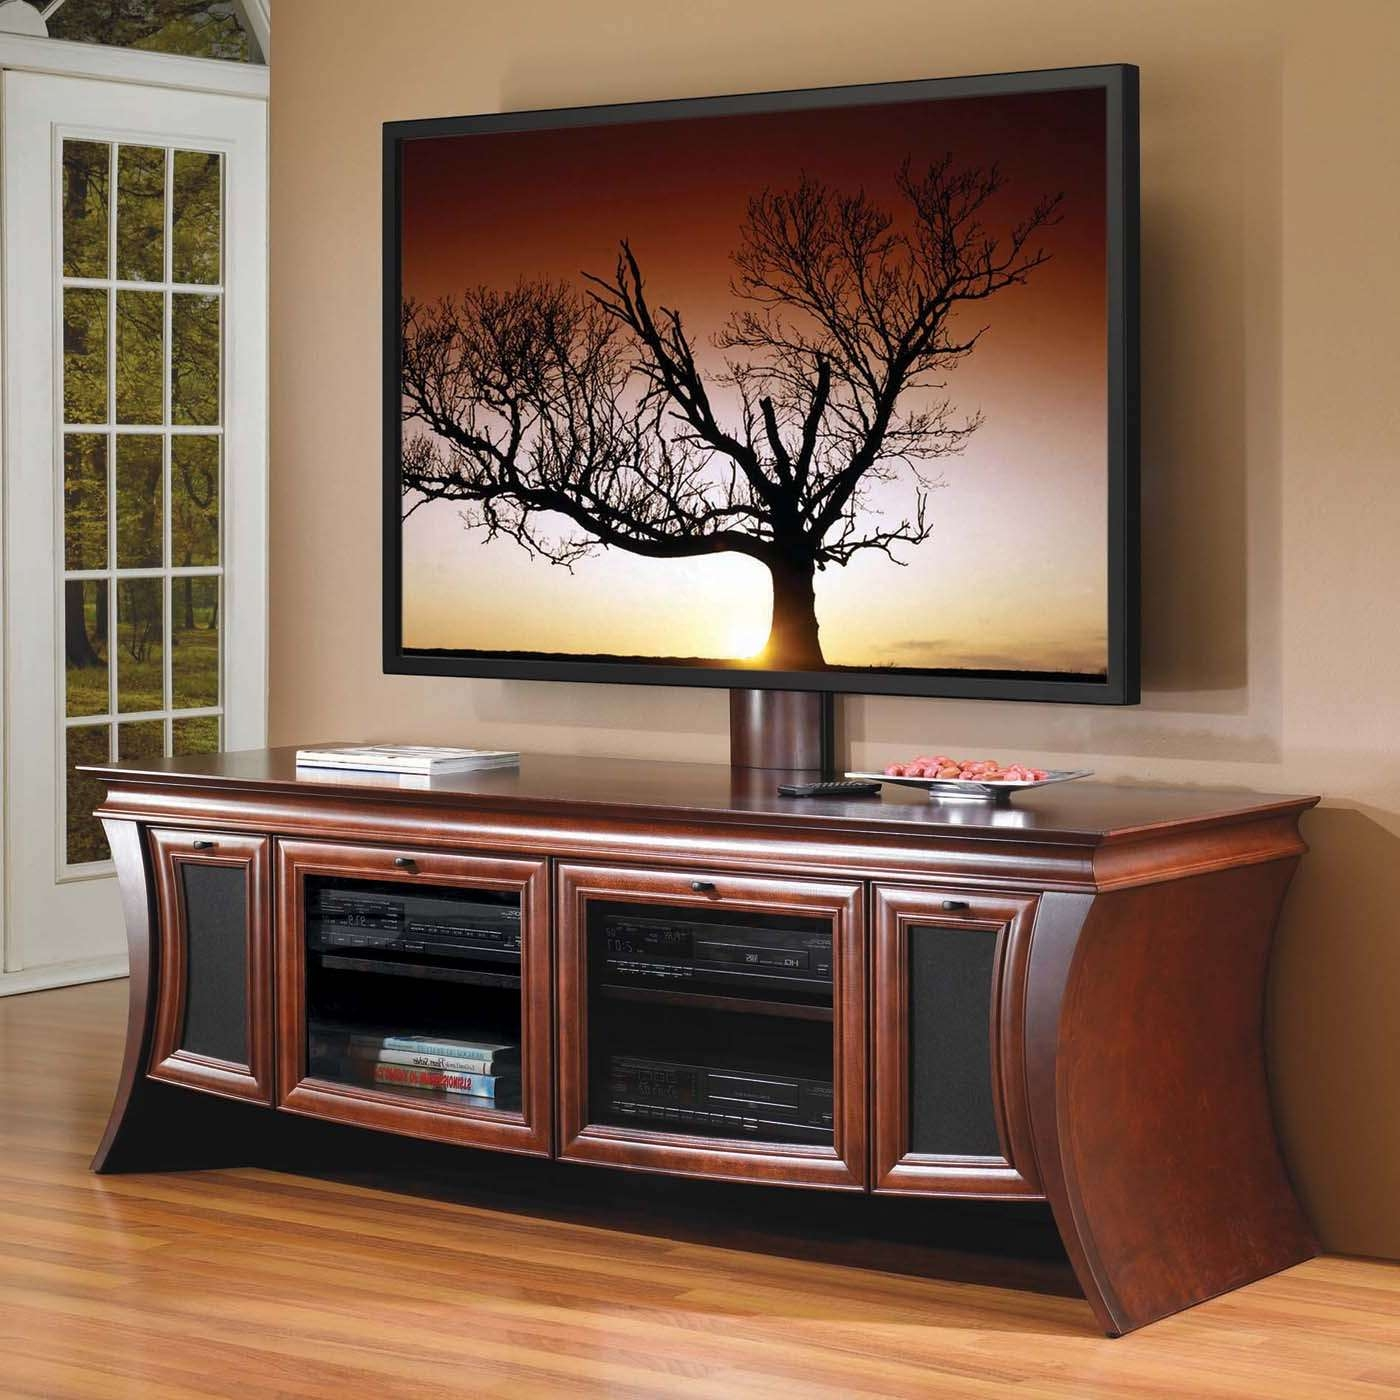 Furnitures Media Stands For Flat Screen Tvs Furniture The Best Pertaining To Tv Stands For Large Tvs (View 2 of 15)